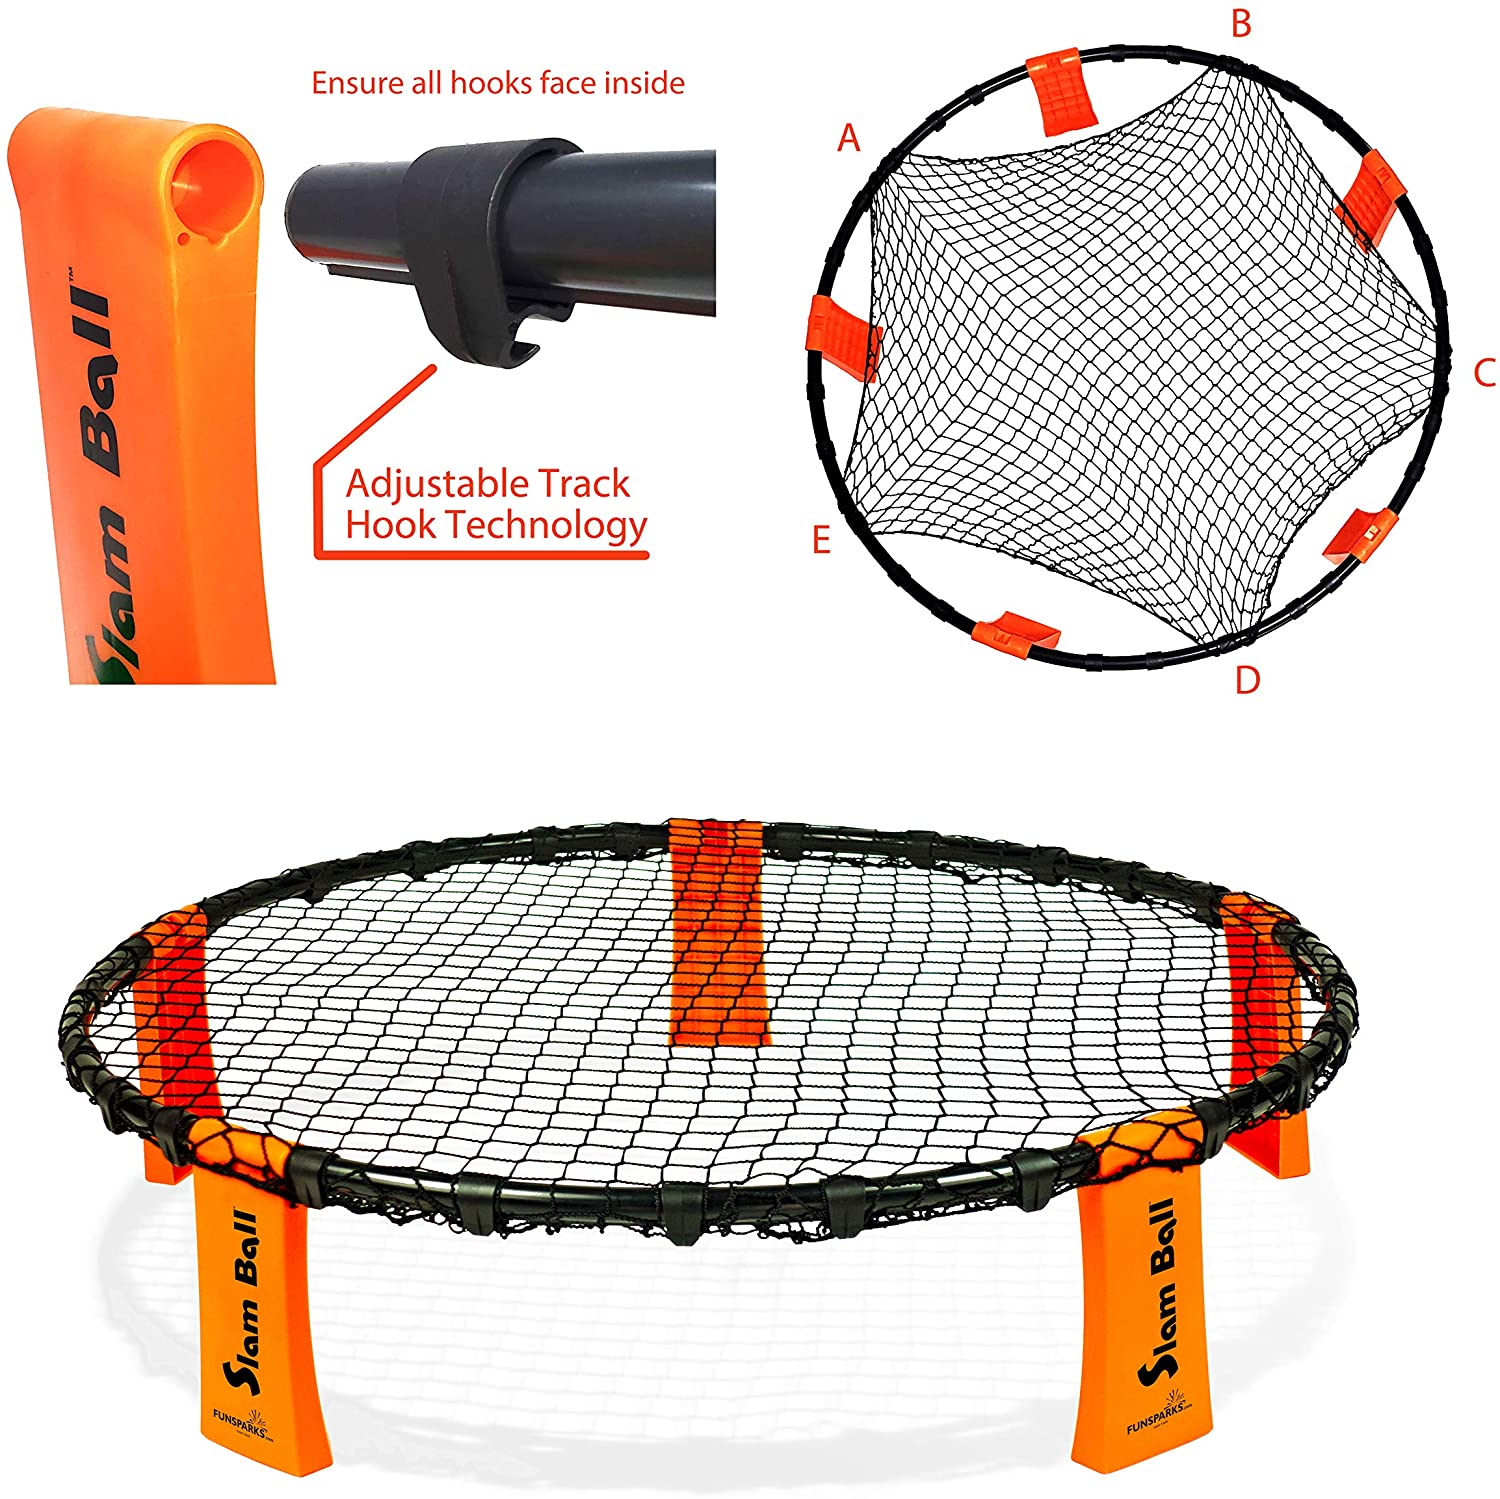 Setting up the net is easy with Slam Ball by Funsparks